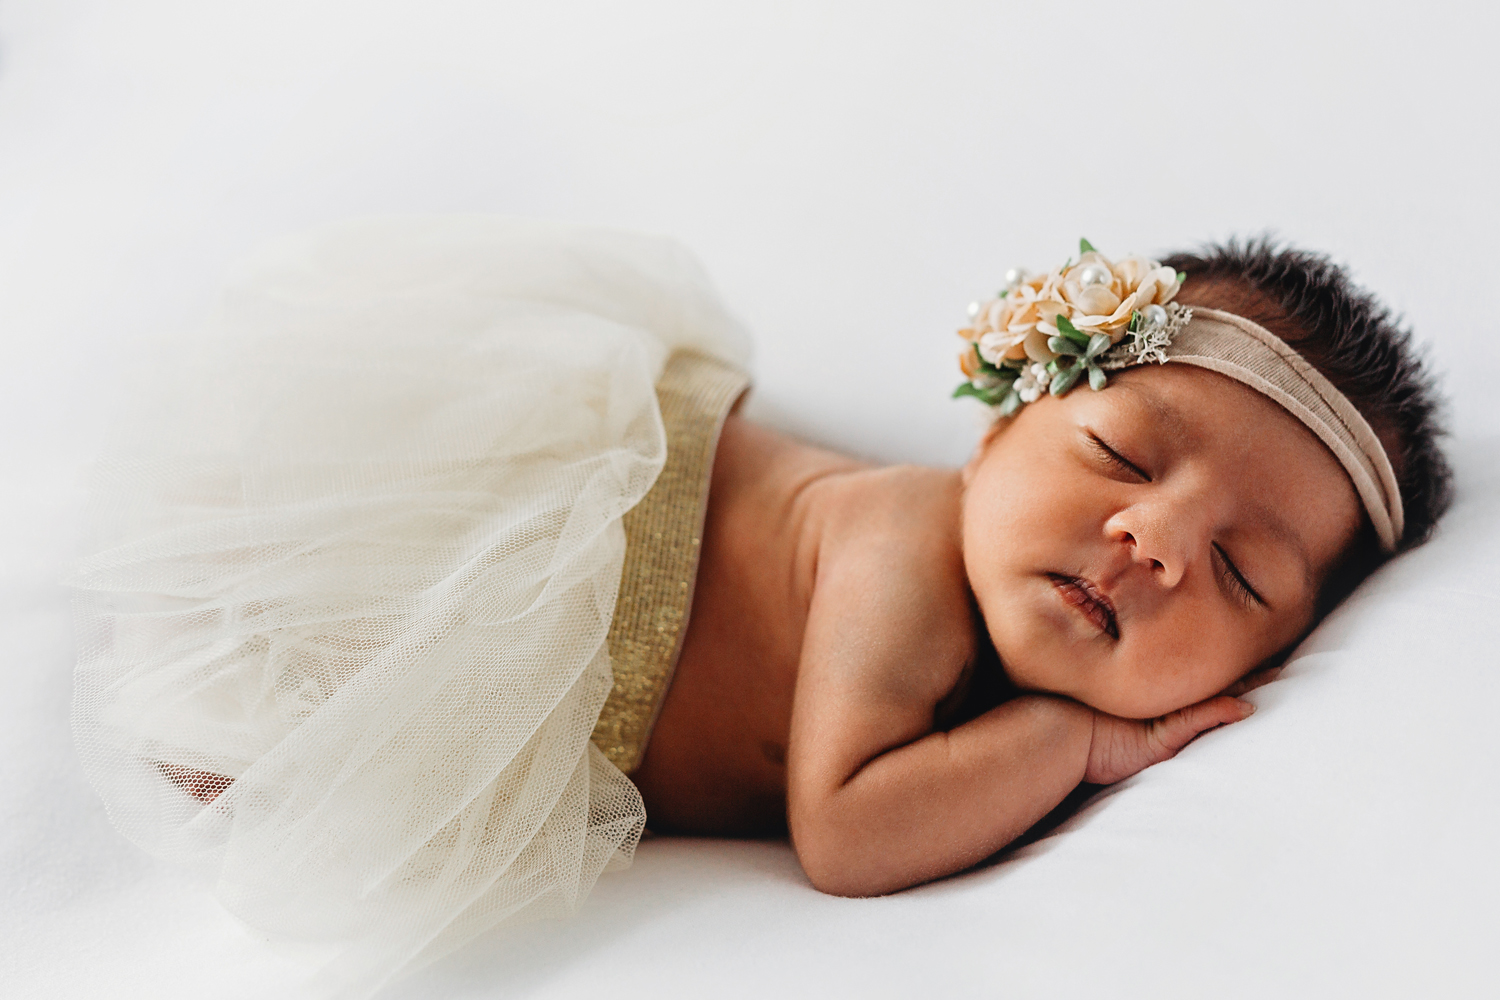 newborn photography in rutherford new jersey of a baby in a tutu